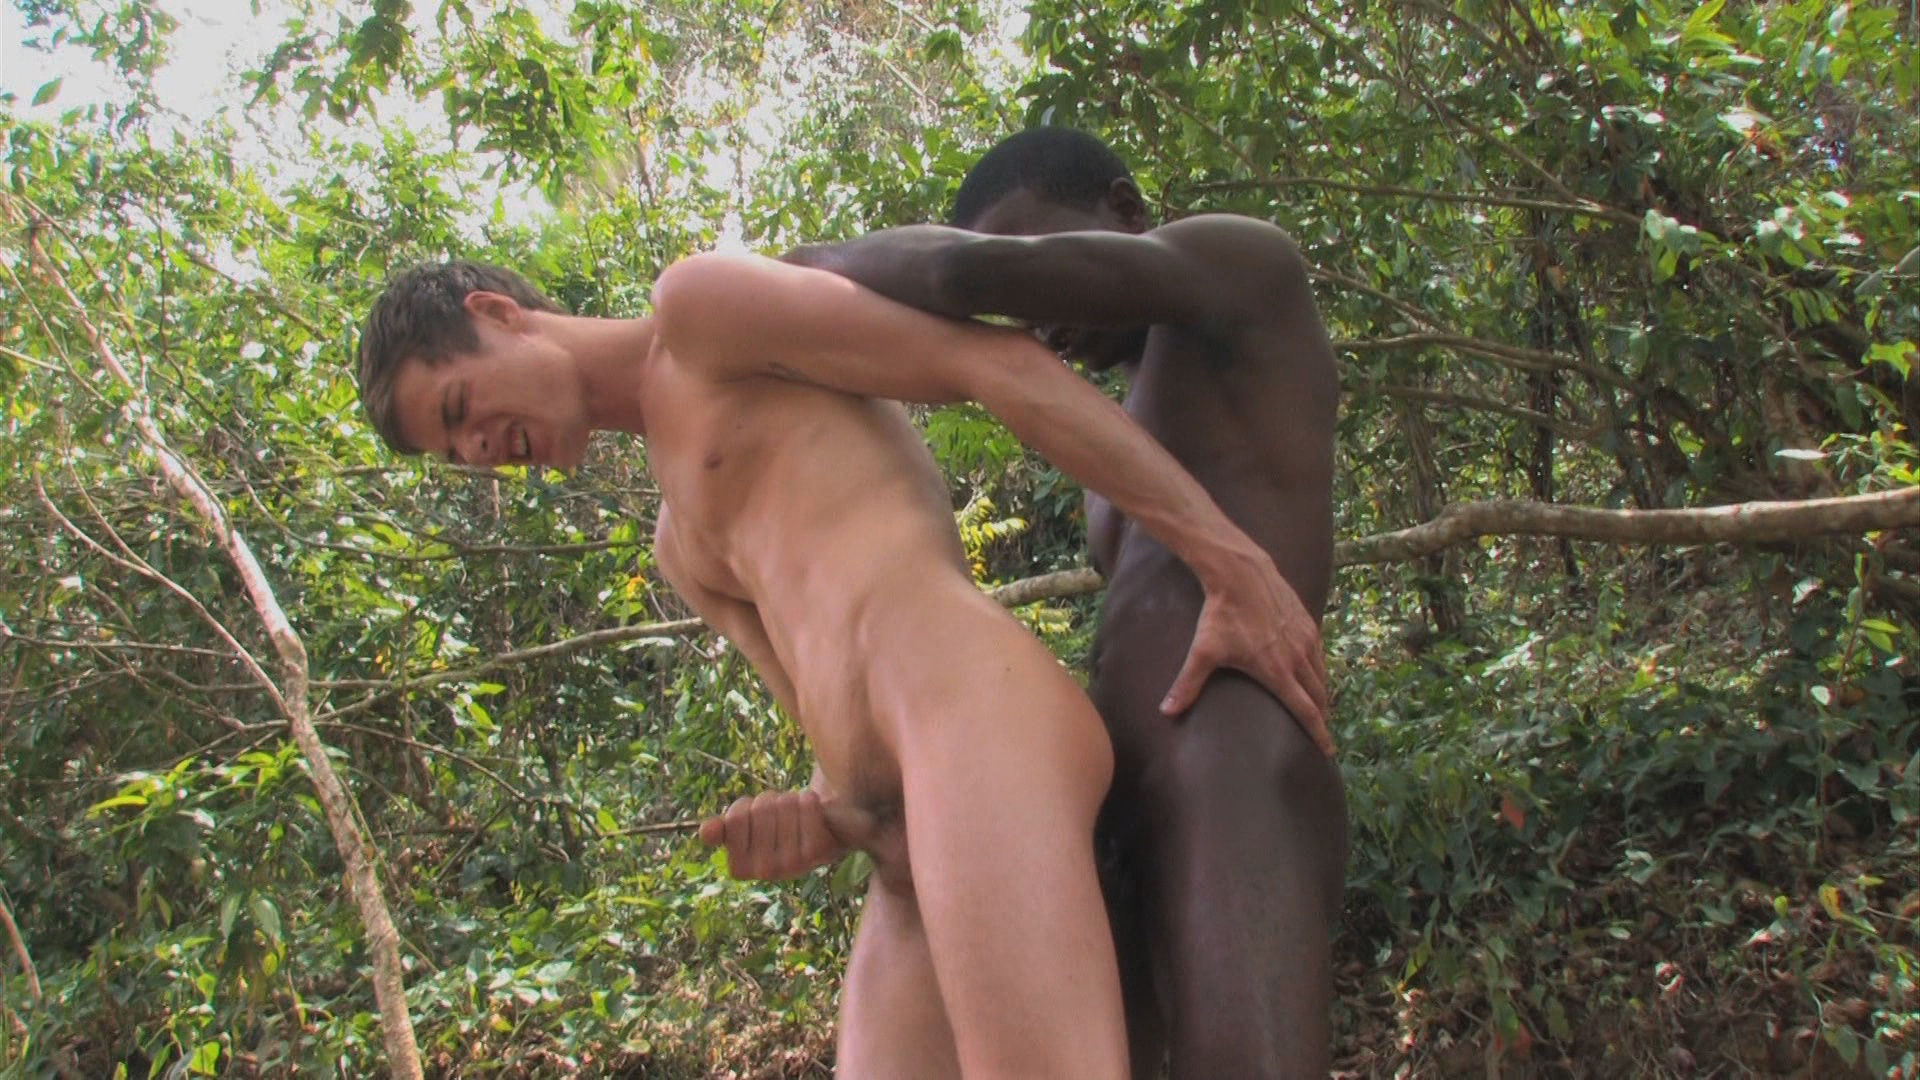 Bareback Monster Cocks: American Twinks Supersized Xvideo gay